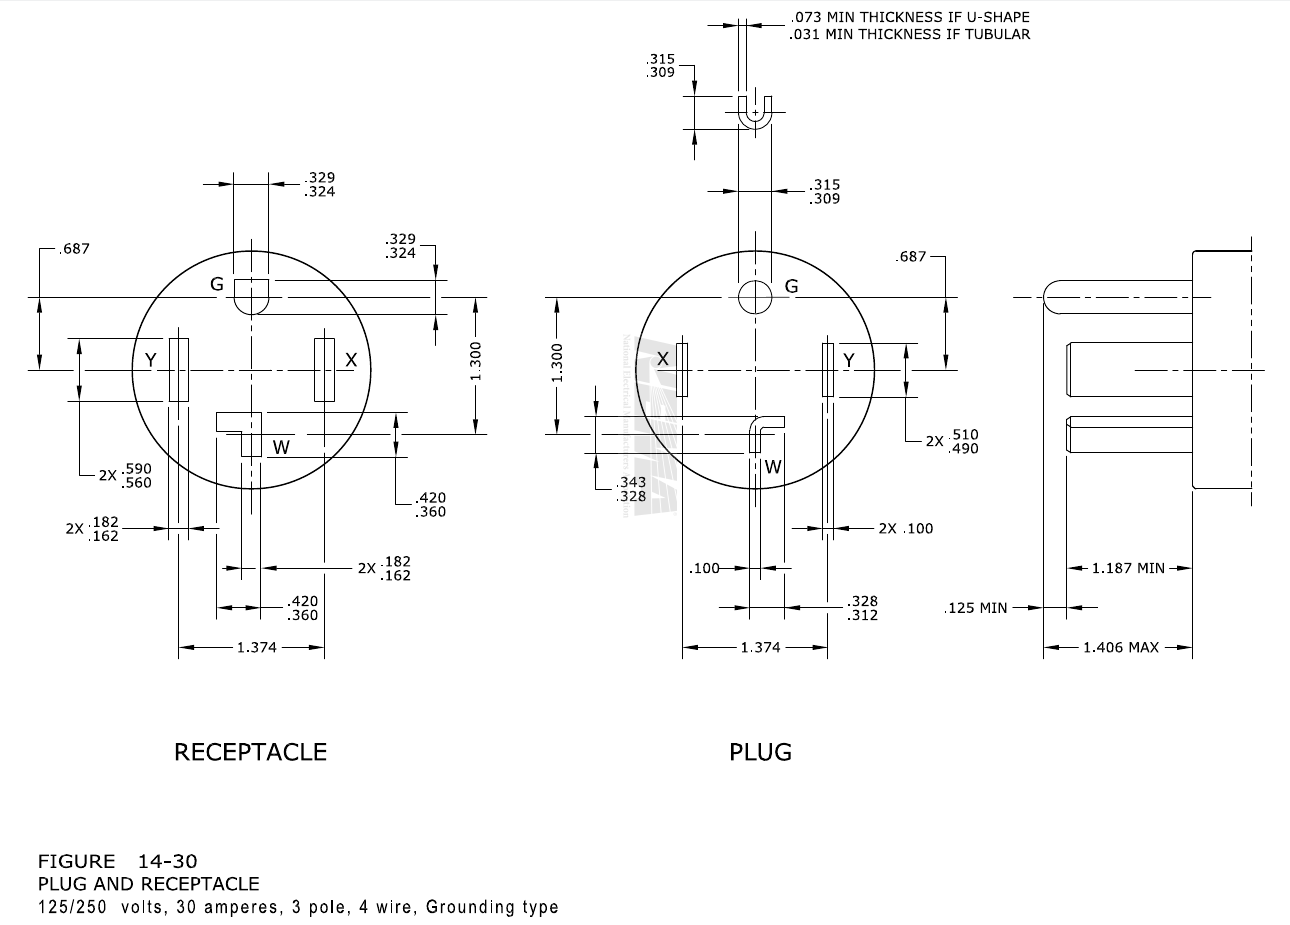 hight resolution of  the white wire connects to the w terminal in the 14 30 plug but is not connected in the l 6 30 or 11 30 receptacle the unconnected end should be